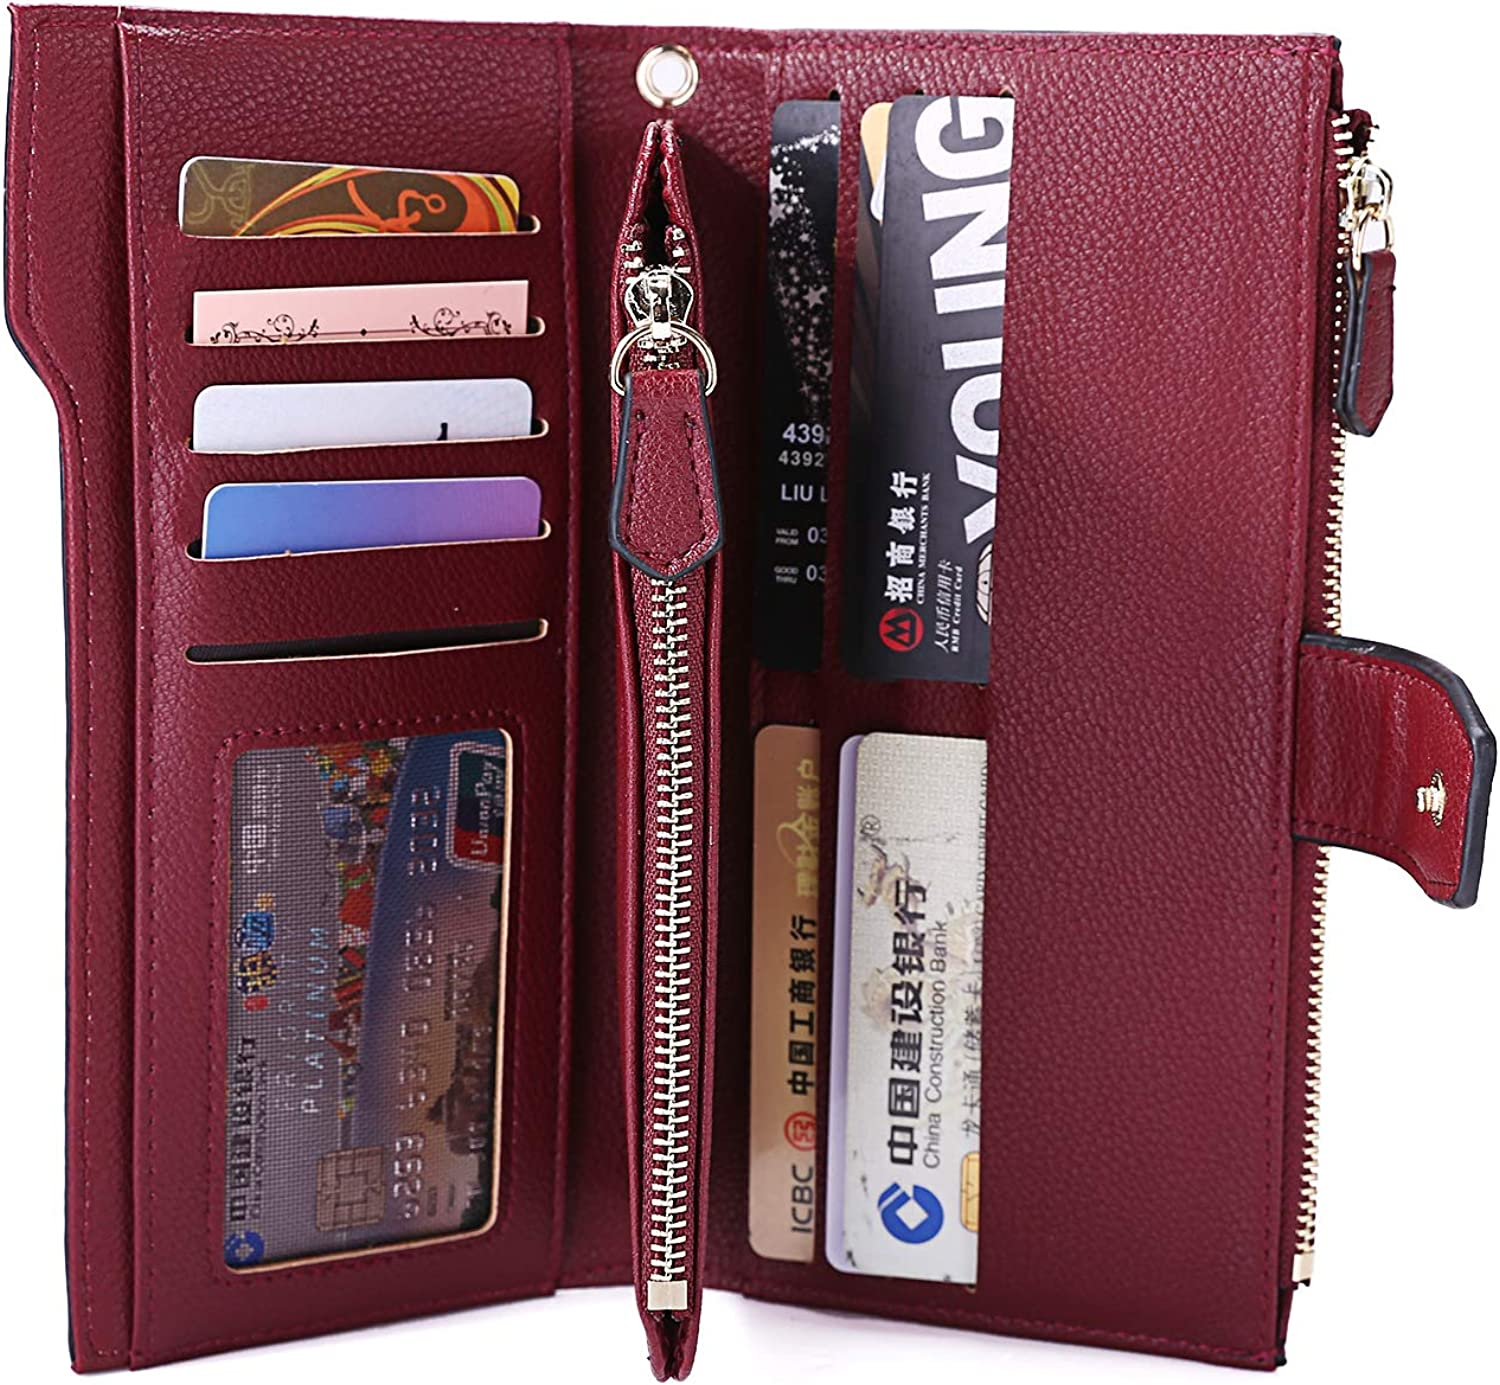 [UPGRADE] Women Soft PU Leather Long Wallet Large Capacity Cluth Ladies Purse Card Holder